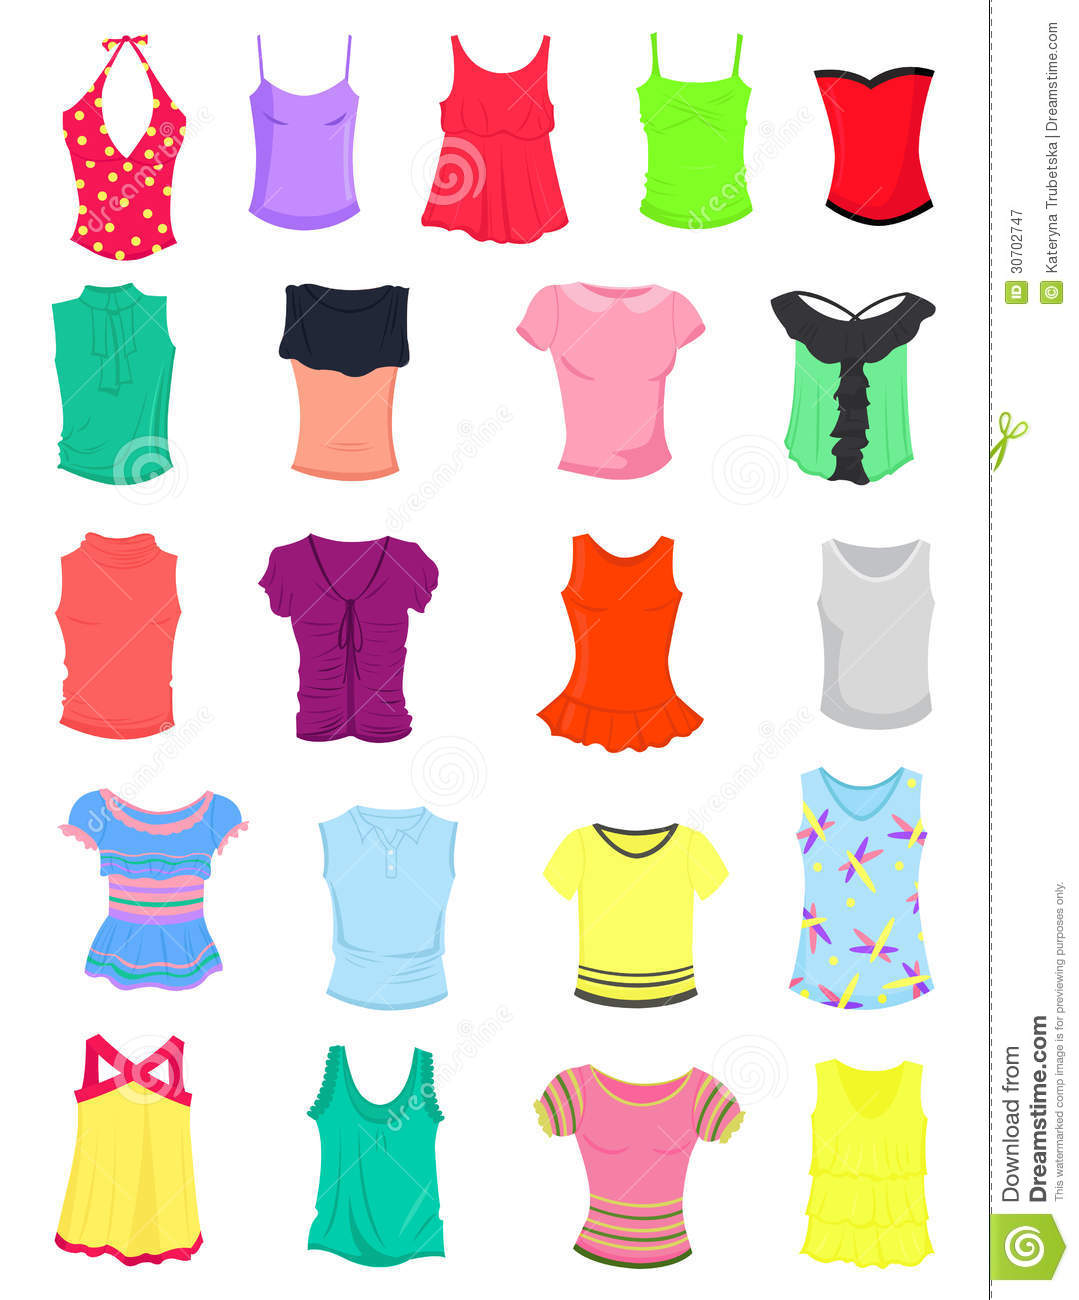 Art Unlimited Sportswear: T-shirts And Tank Tops Stock Vector. Illustration Of Front